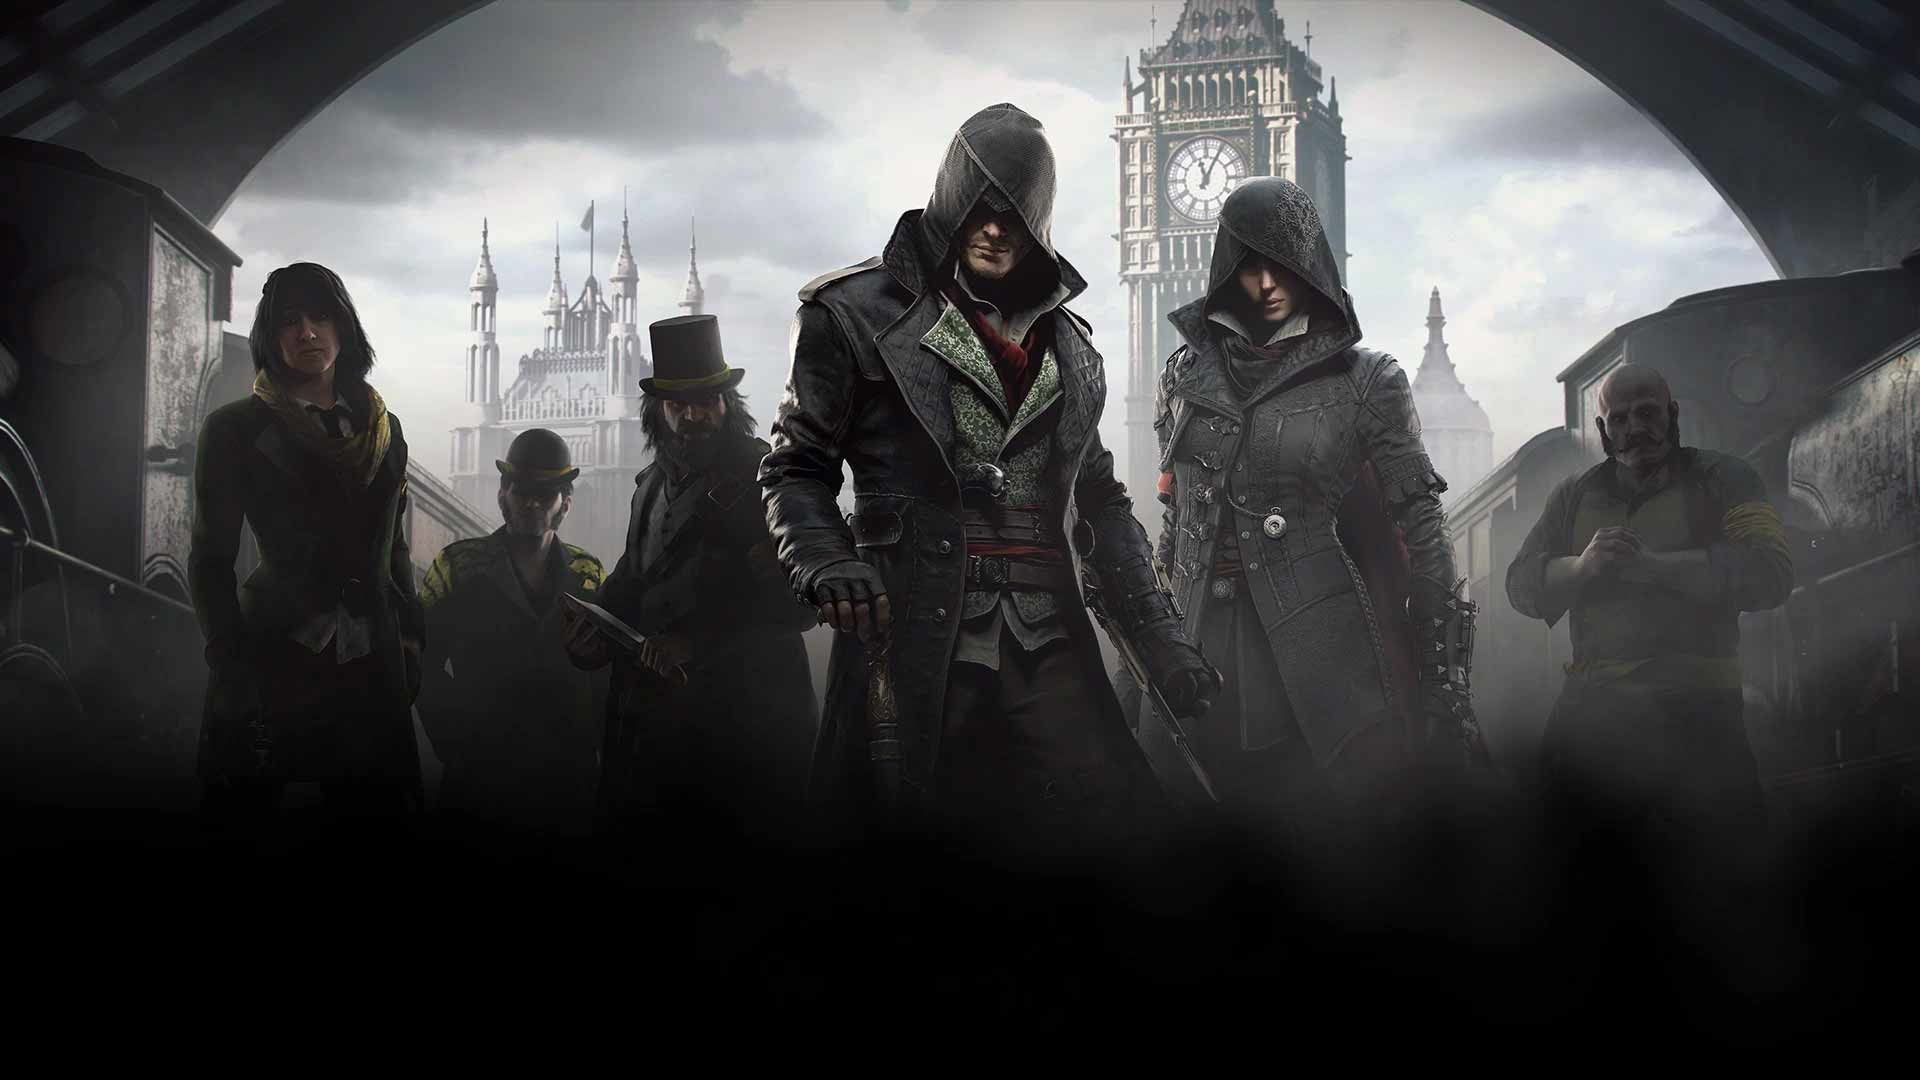 Assassins Creed Syndicate Background Wallpaper Free 153 Kb Custer Nail Assassins Creed Syndicate Assassins Creed Assassin S Creed